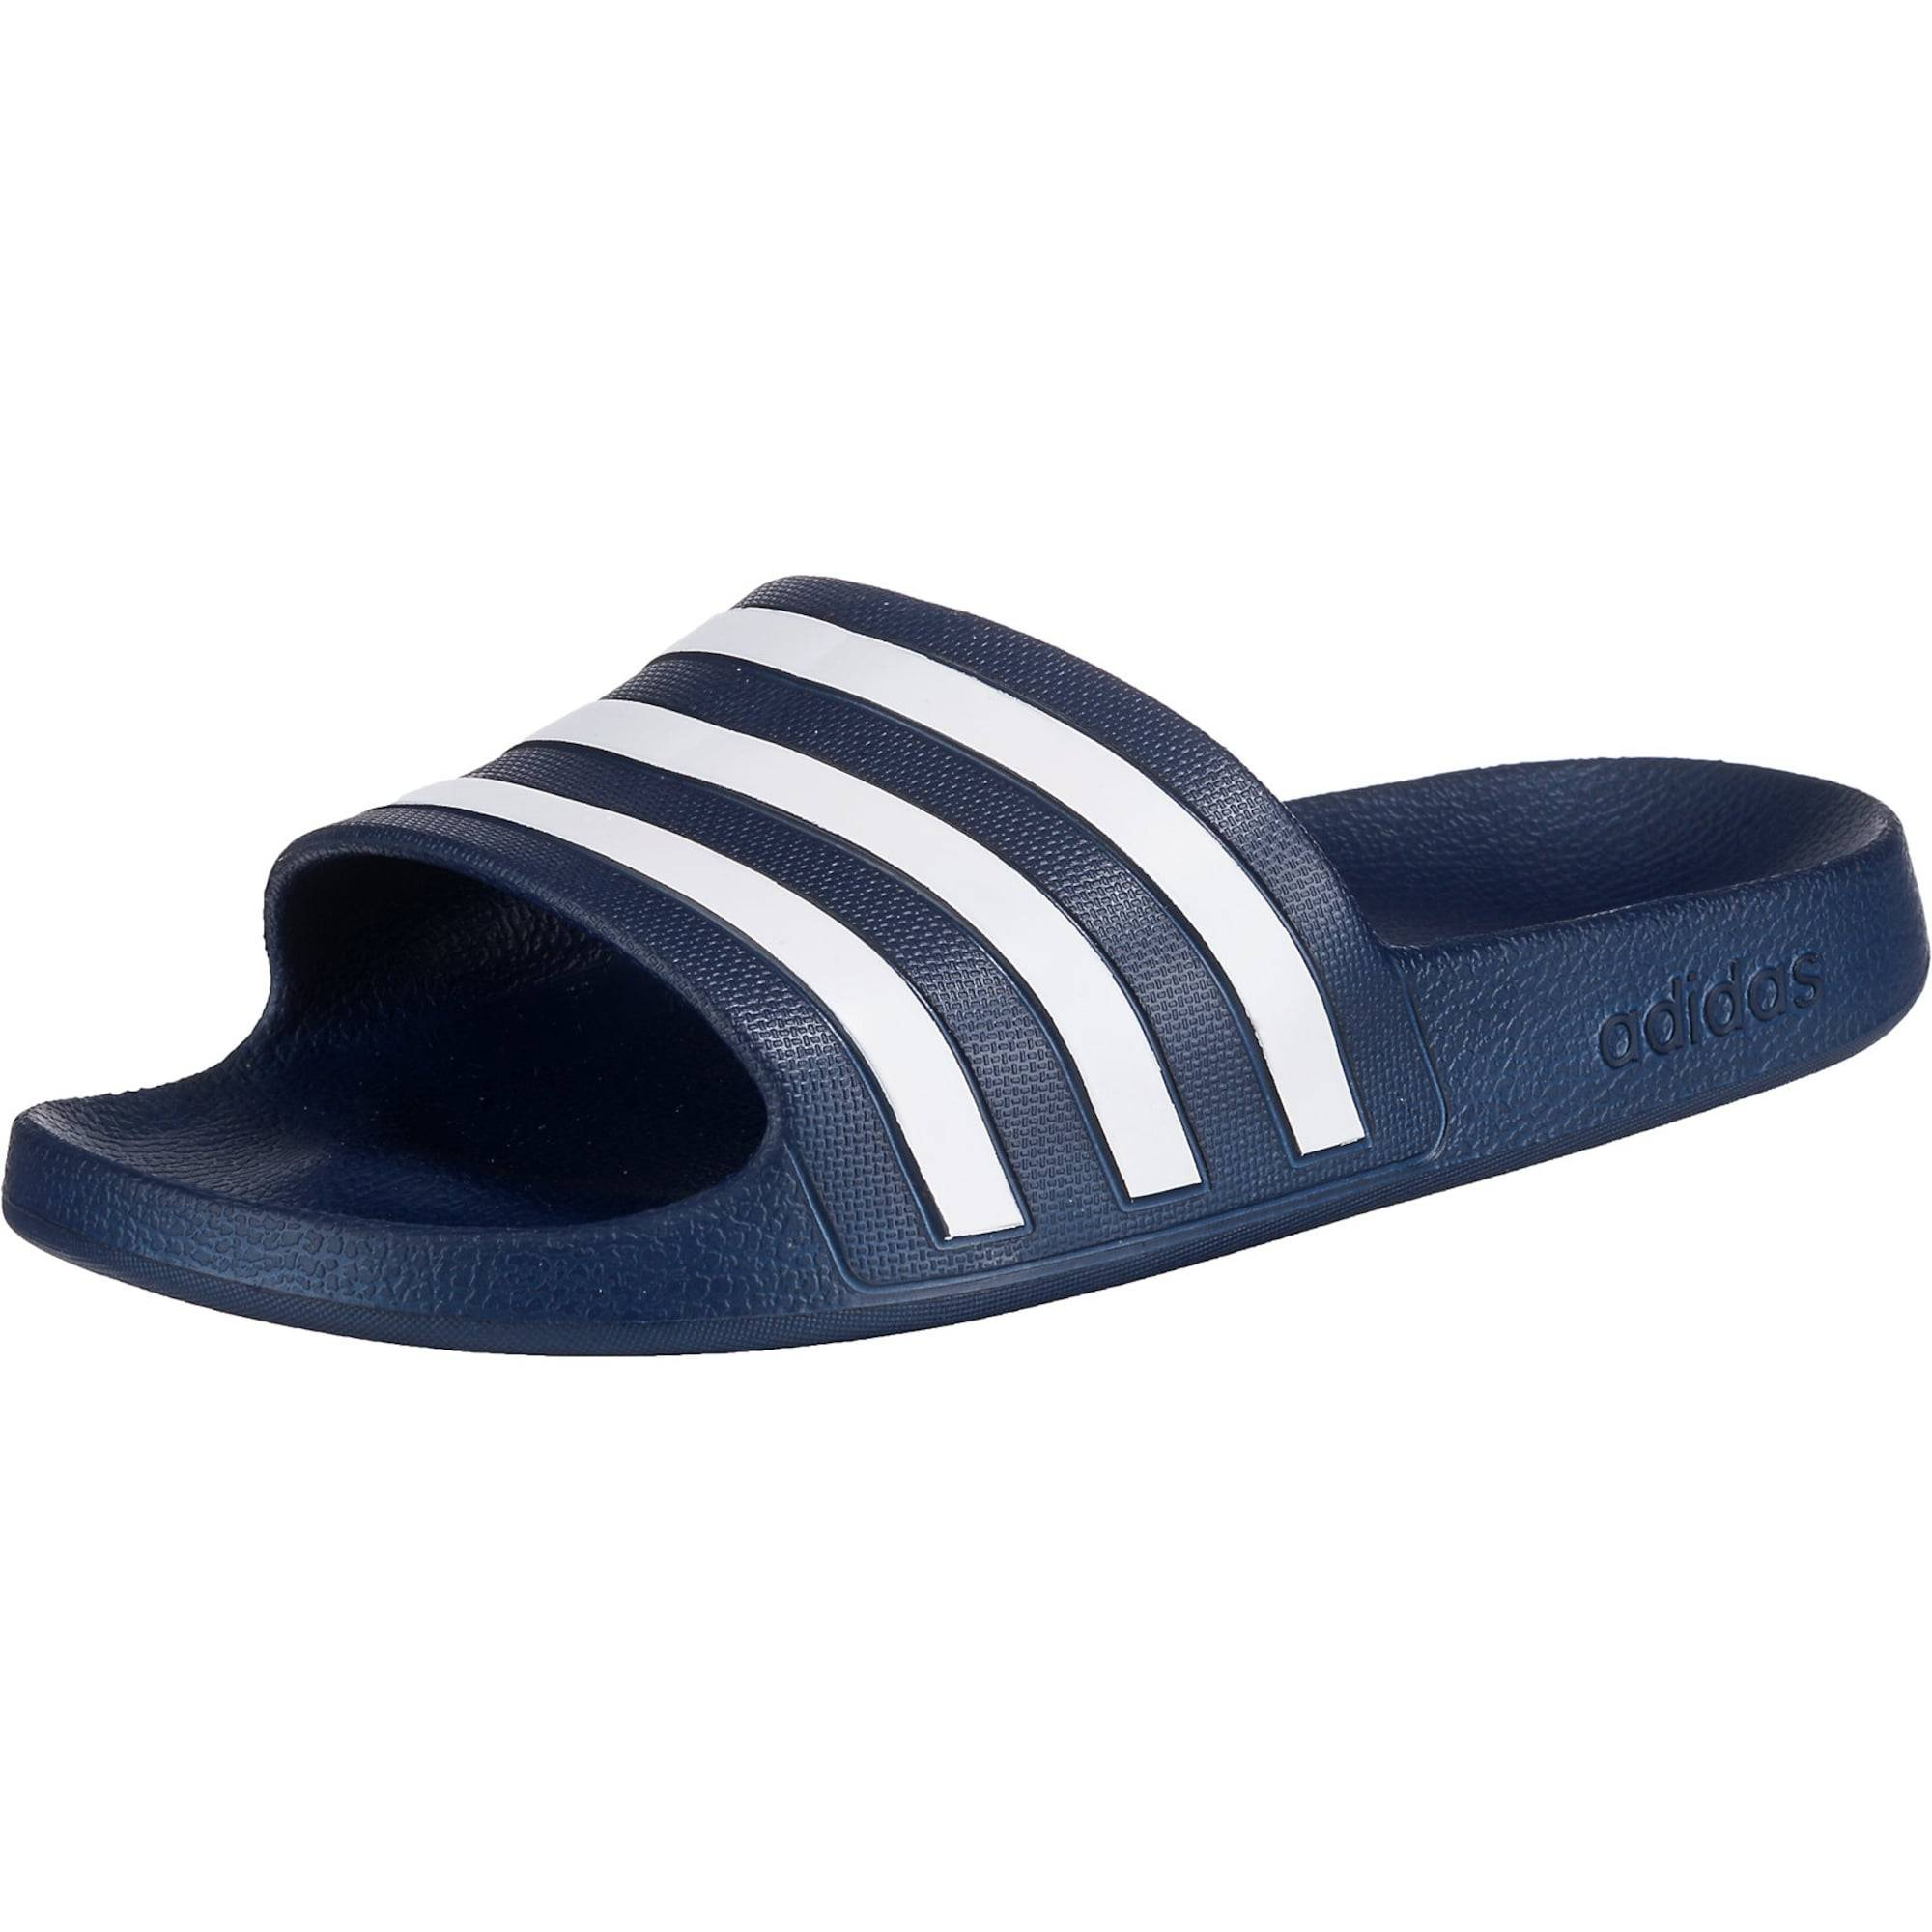 ADIDAS PERFORMANCE Claquettes / Tongs  - Bleu - Taille: 36.5-37 - female